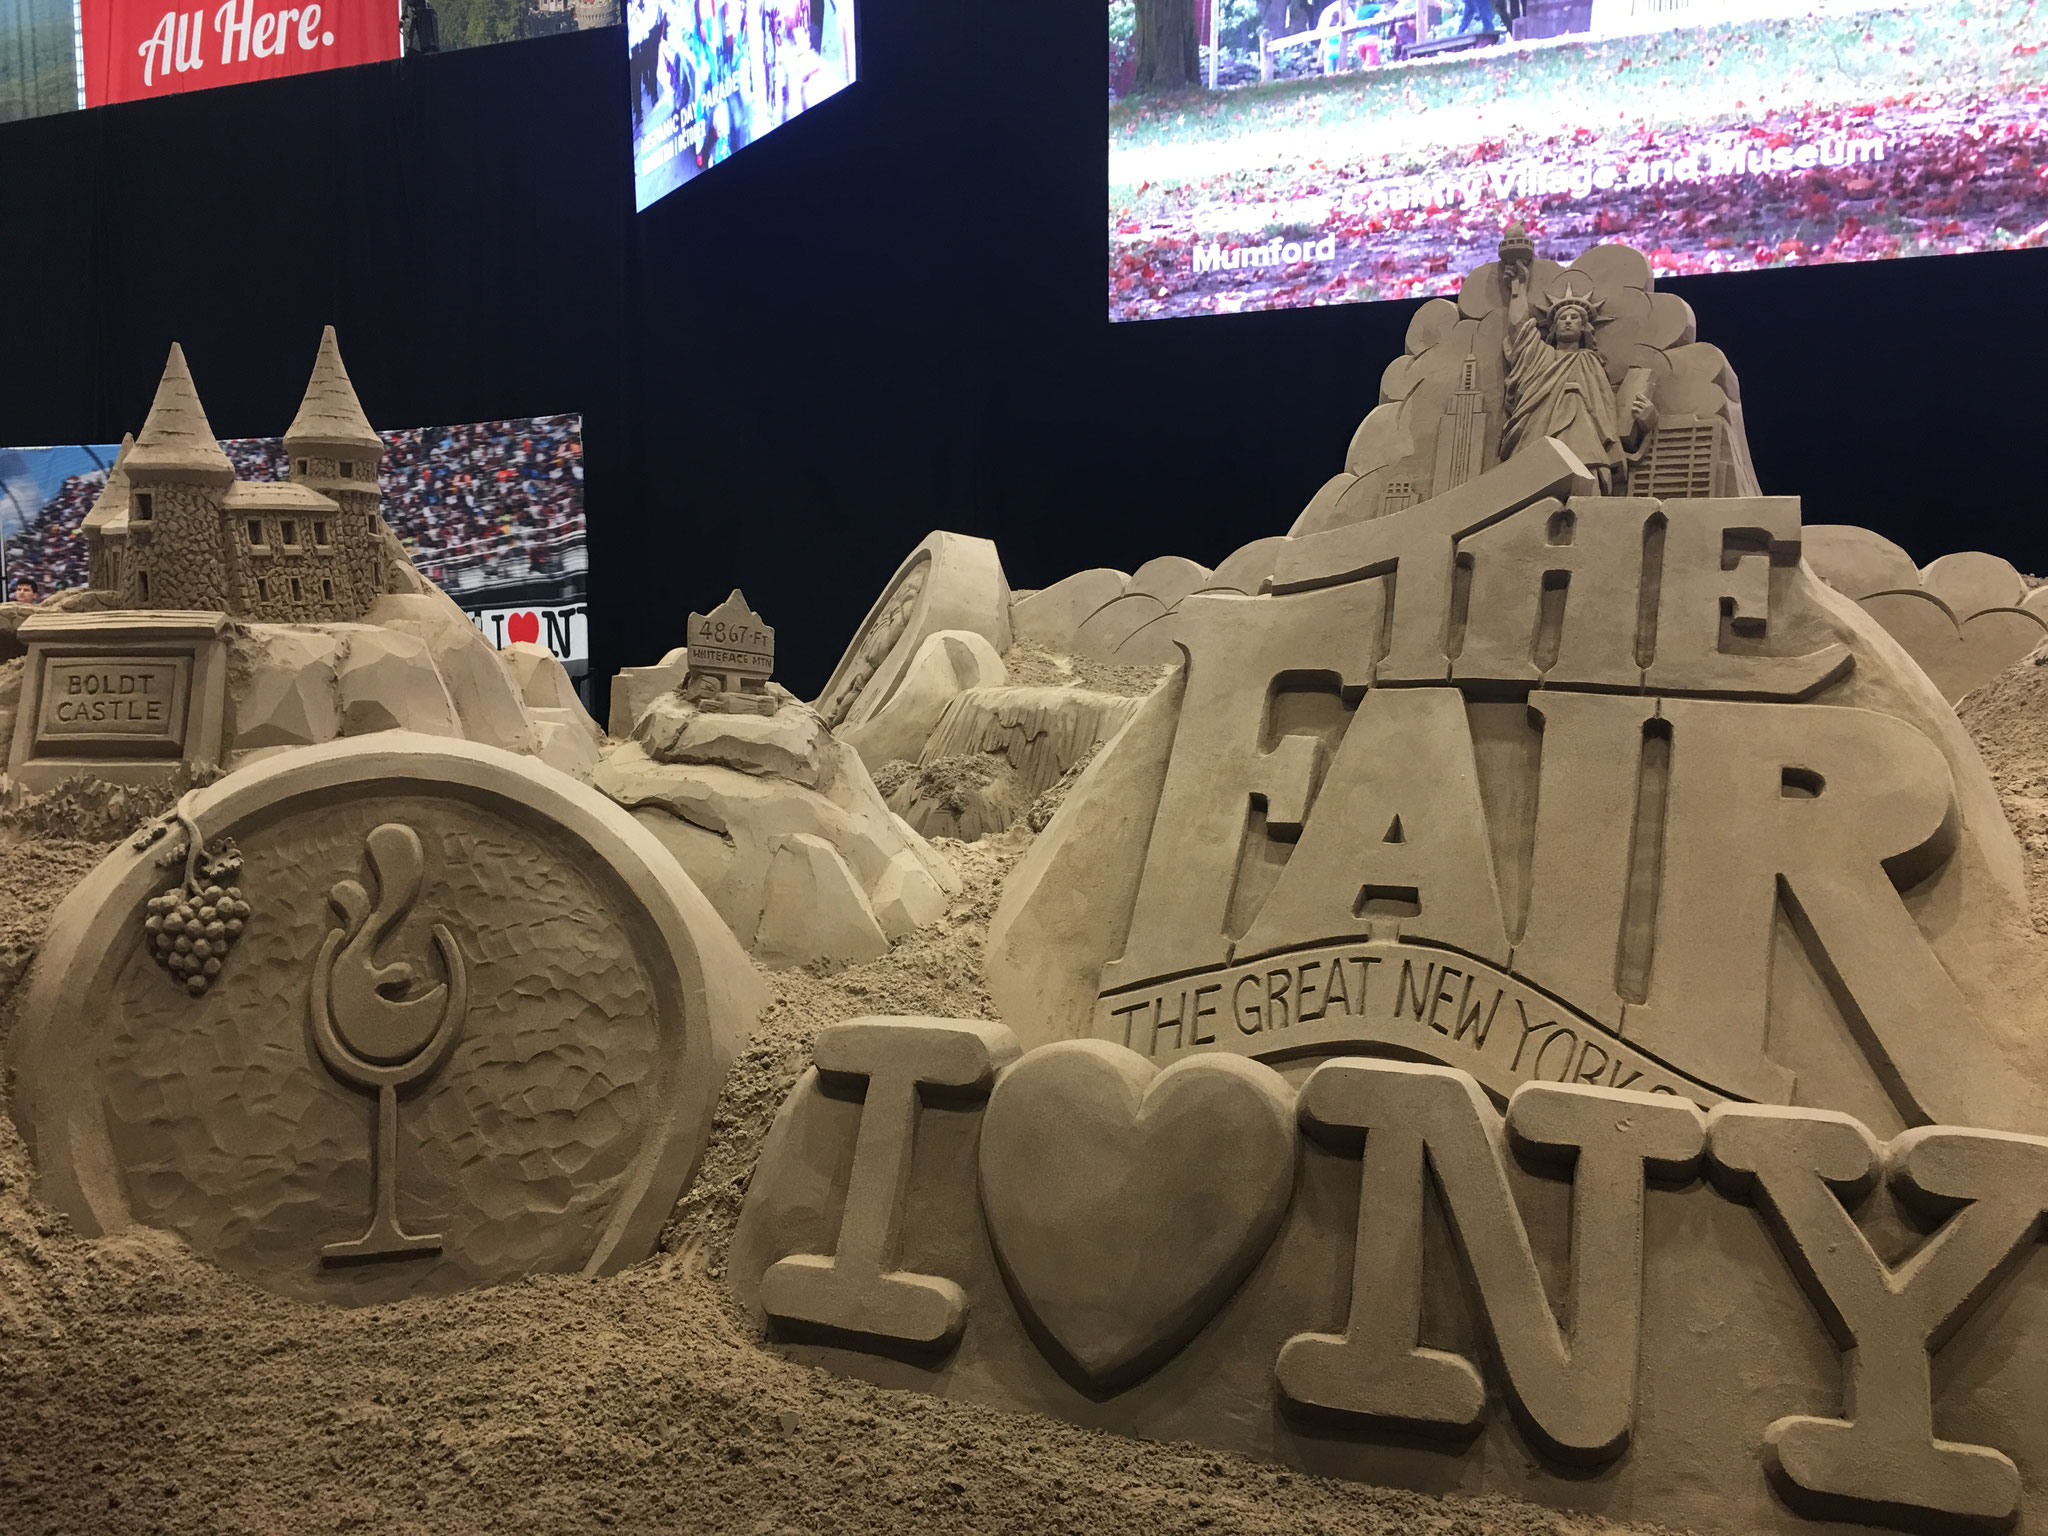 the Sand Sculpture